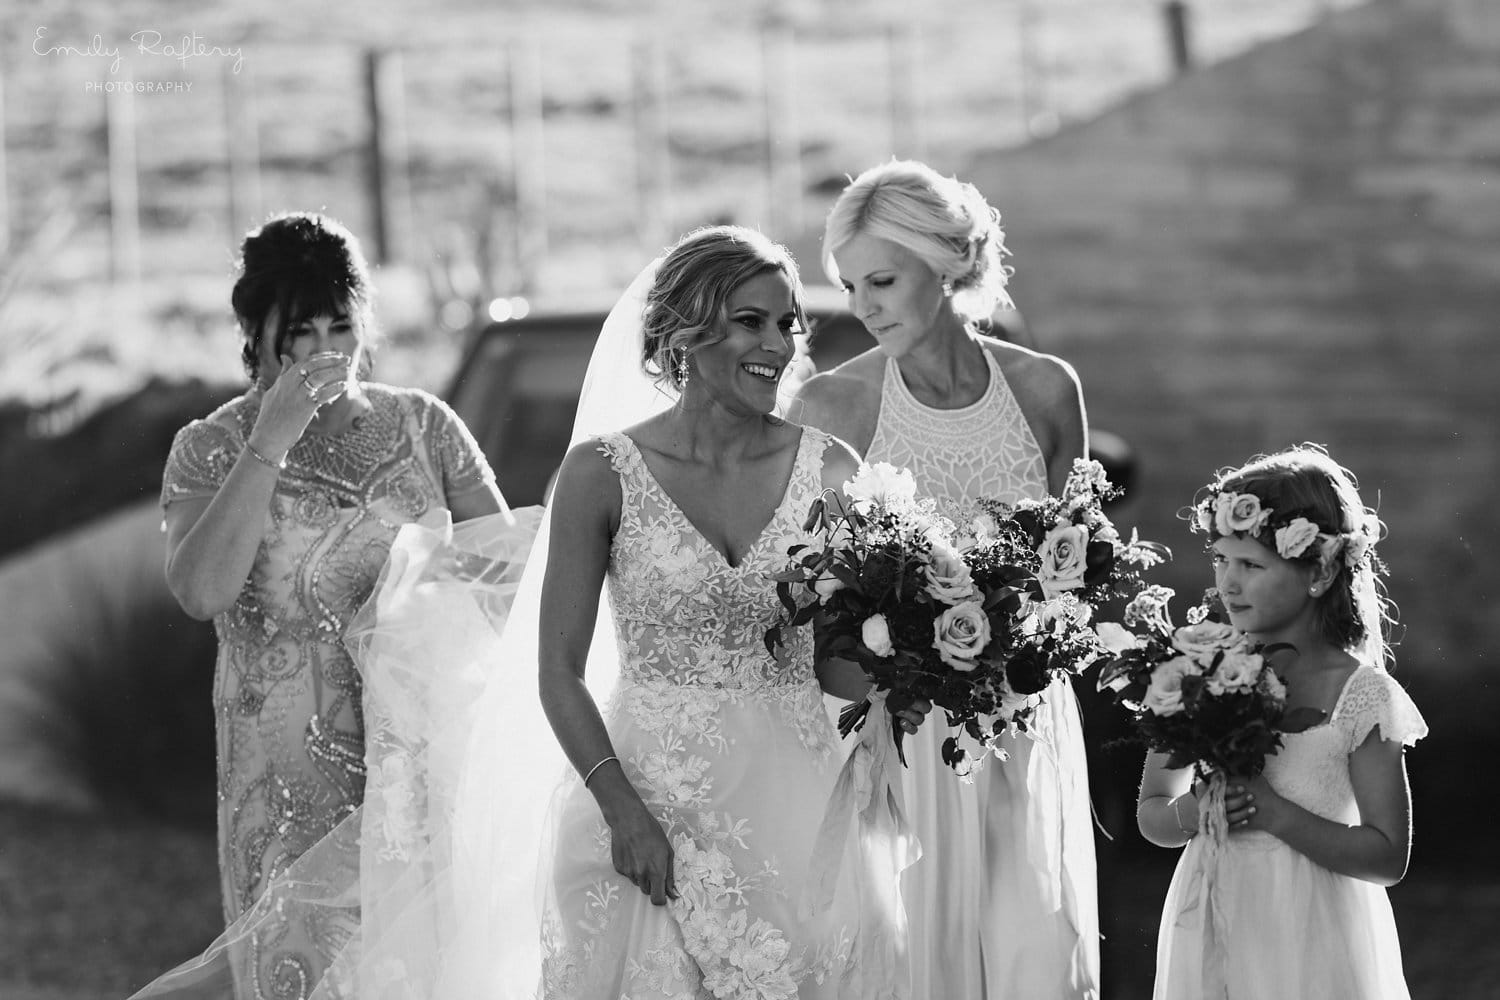 Real Weddings | Vinka Design | Real Brides Wearing Vinka Gowns | Helena and Tim - Helena being and bridesmaids in black and white